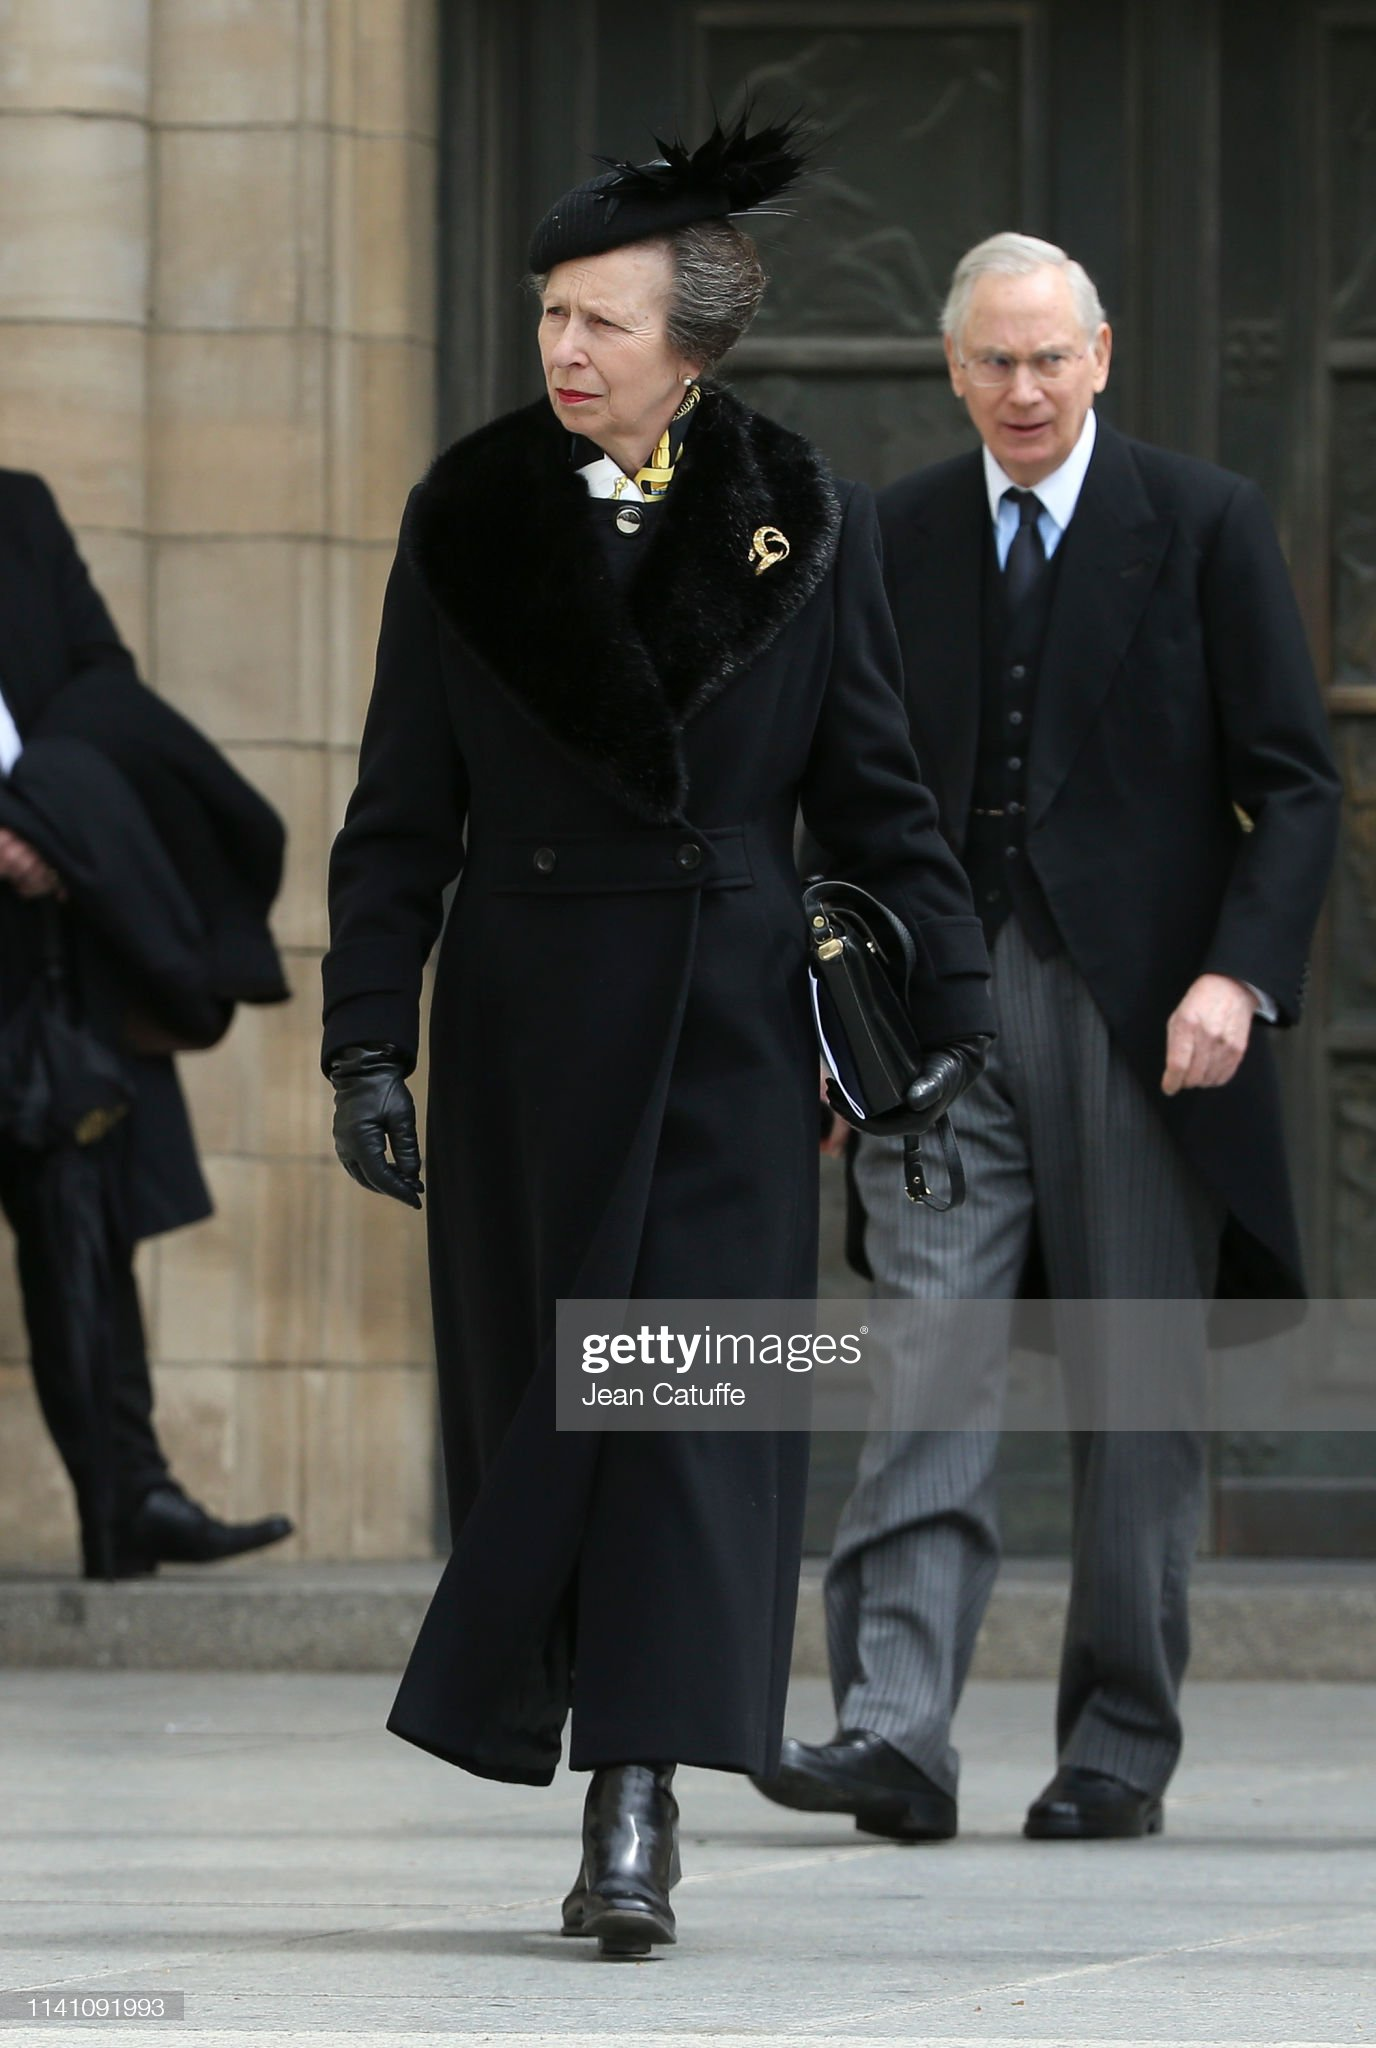 Похороны Великого Герцога Жана https://media.gettyimages.com/photos/princess-anne-leaves-the-funeral-of-grand-duke-jean-of-luxembourg-at-picture-id1141091993?s=2048x2048